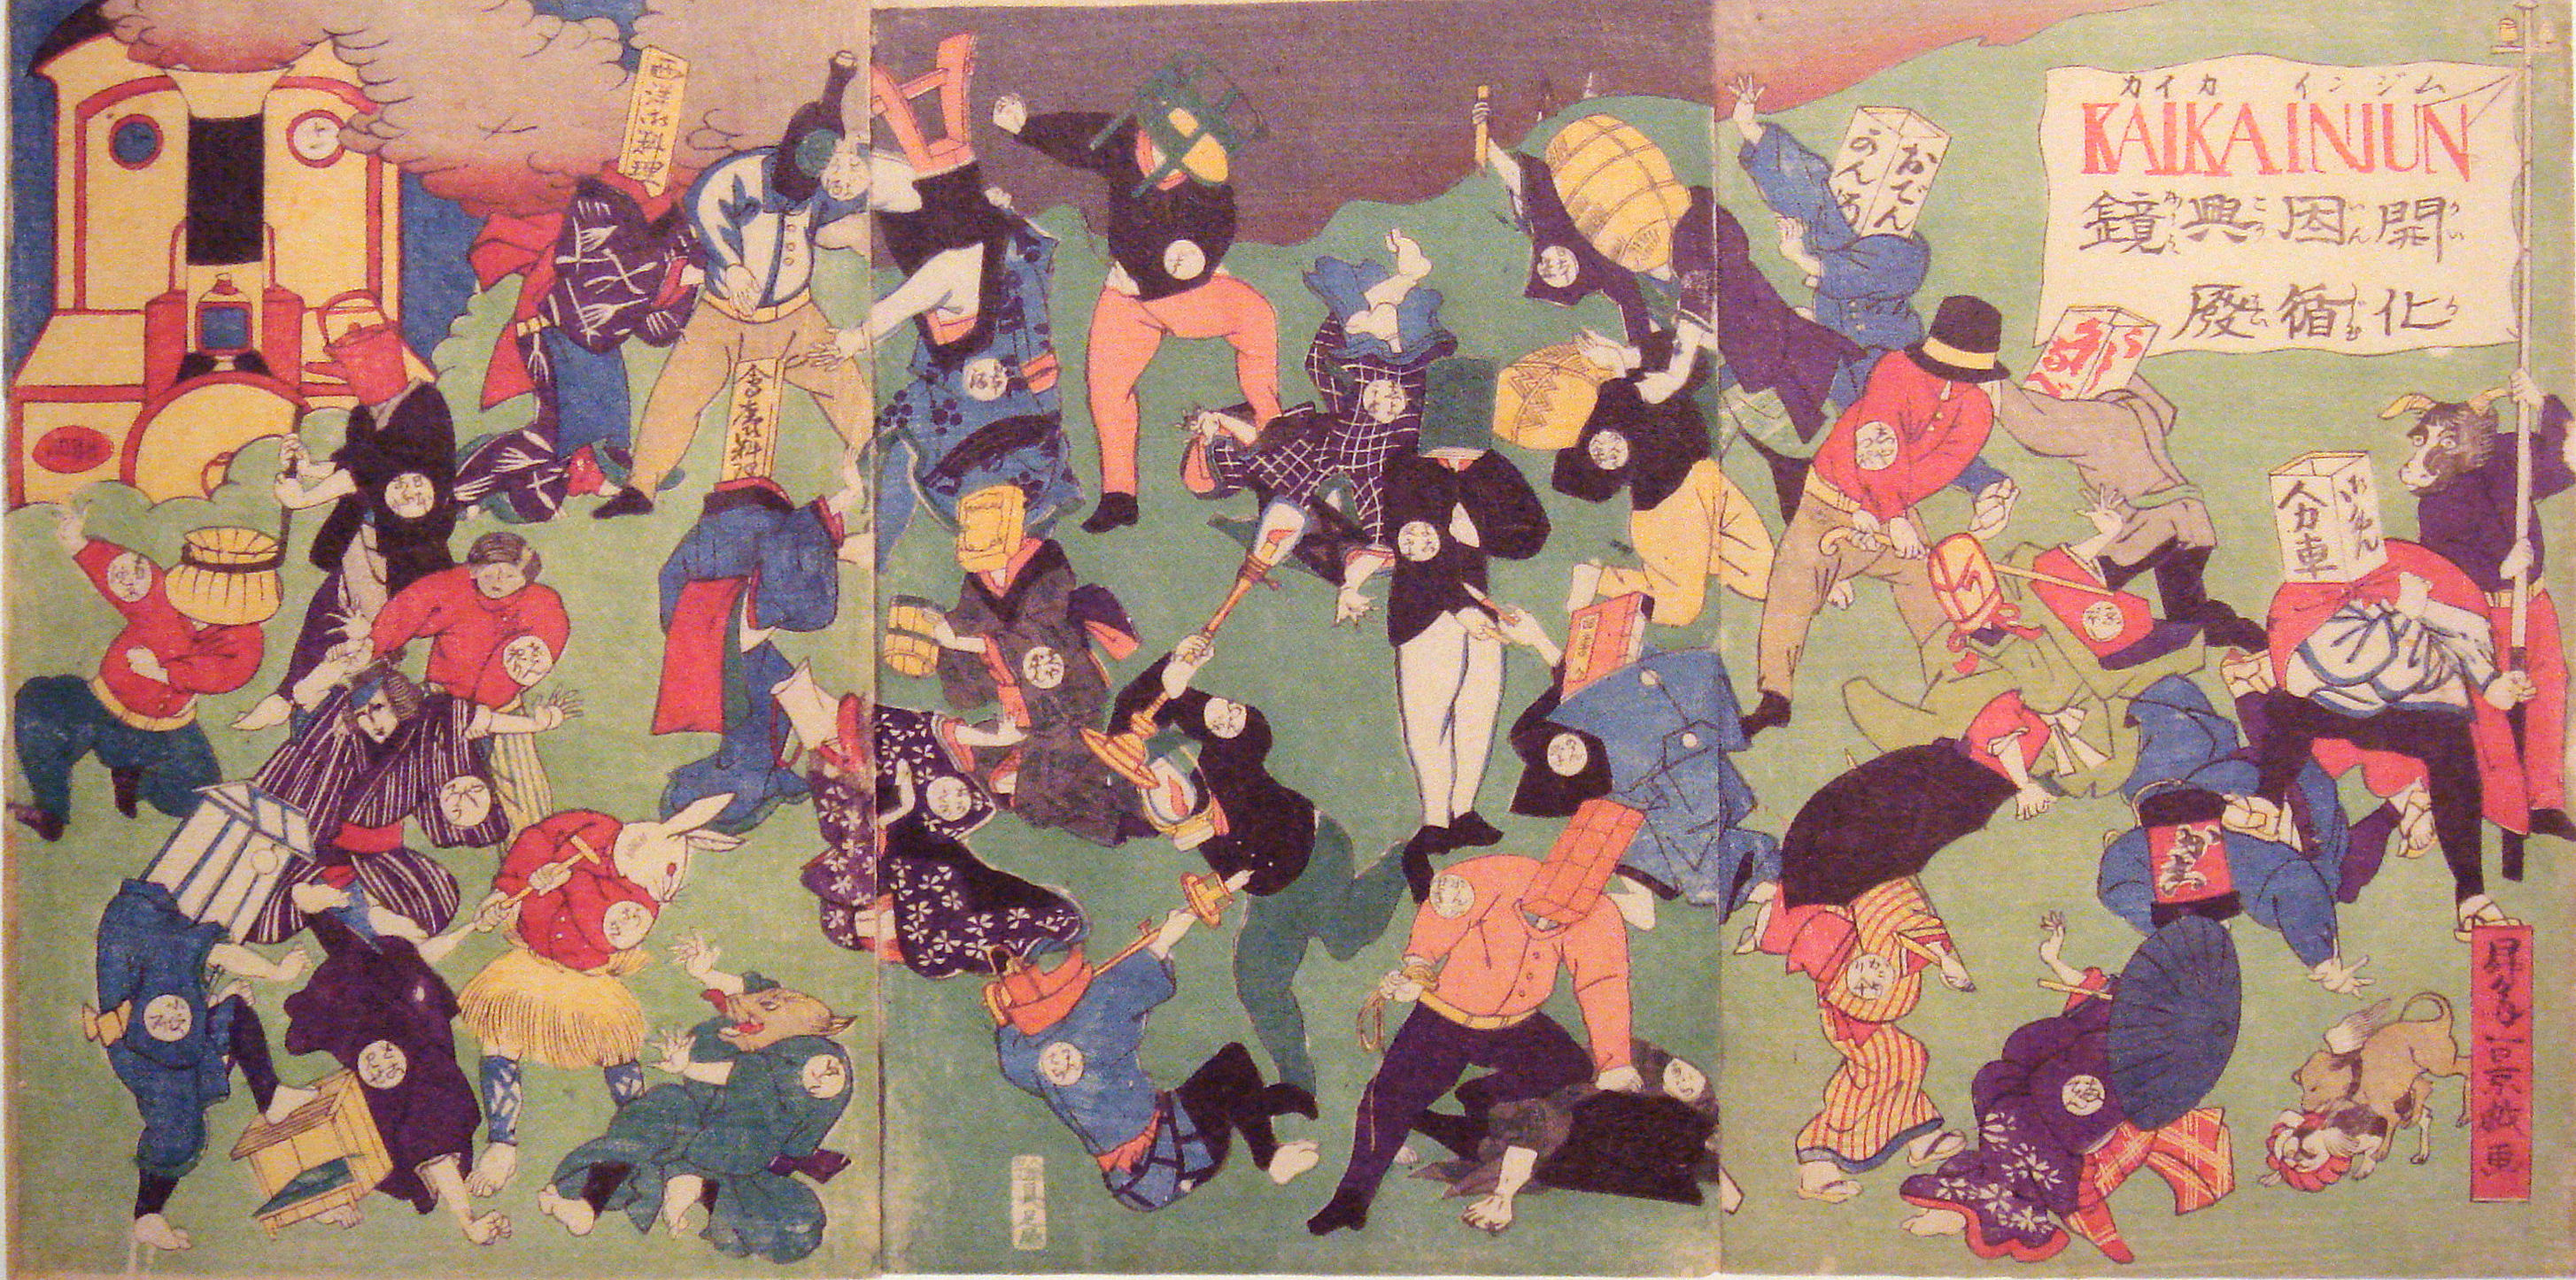 Allegory of the New fighting the Old in early Meiji Japan, circa 1870. Public domain image courtesy of Wikimedia Commons.